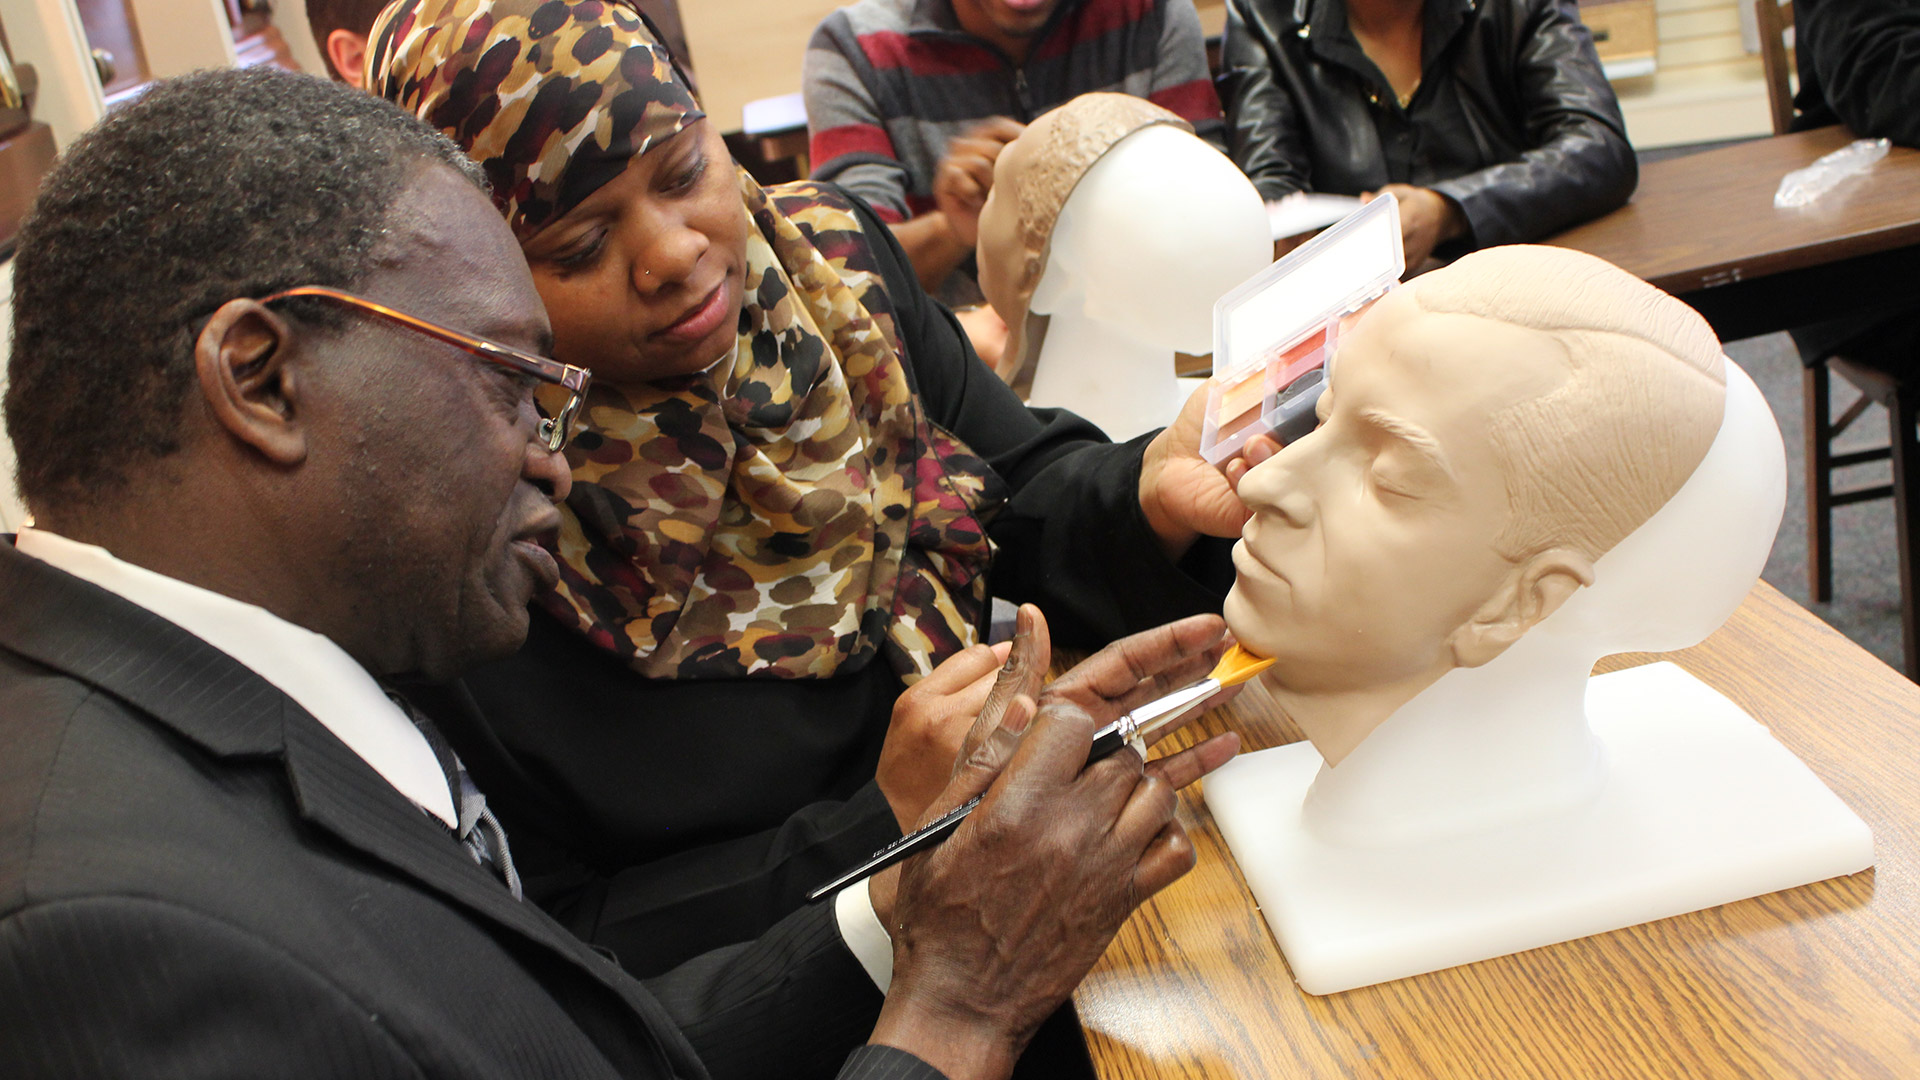 Funeral service students practice applying color to mannequin heads